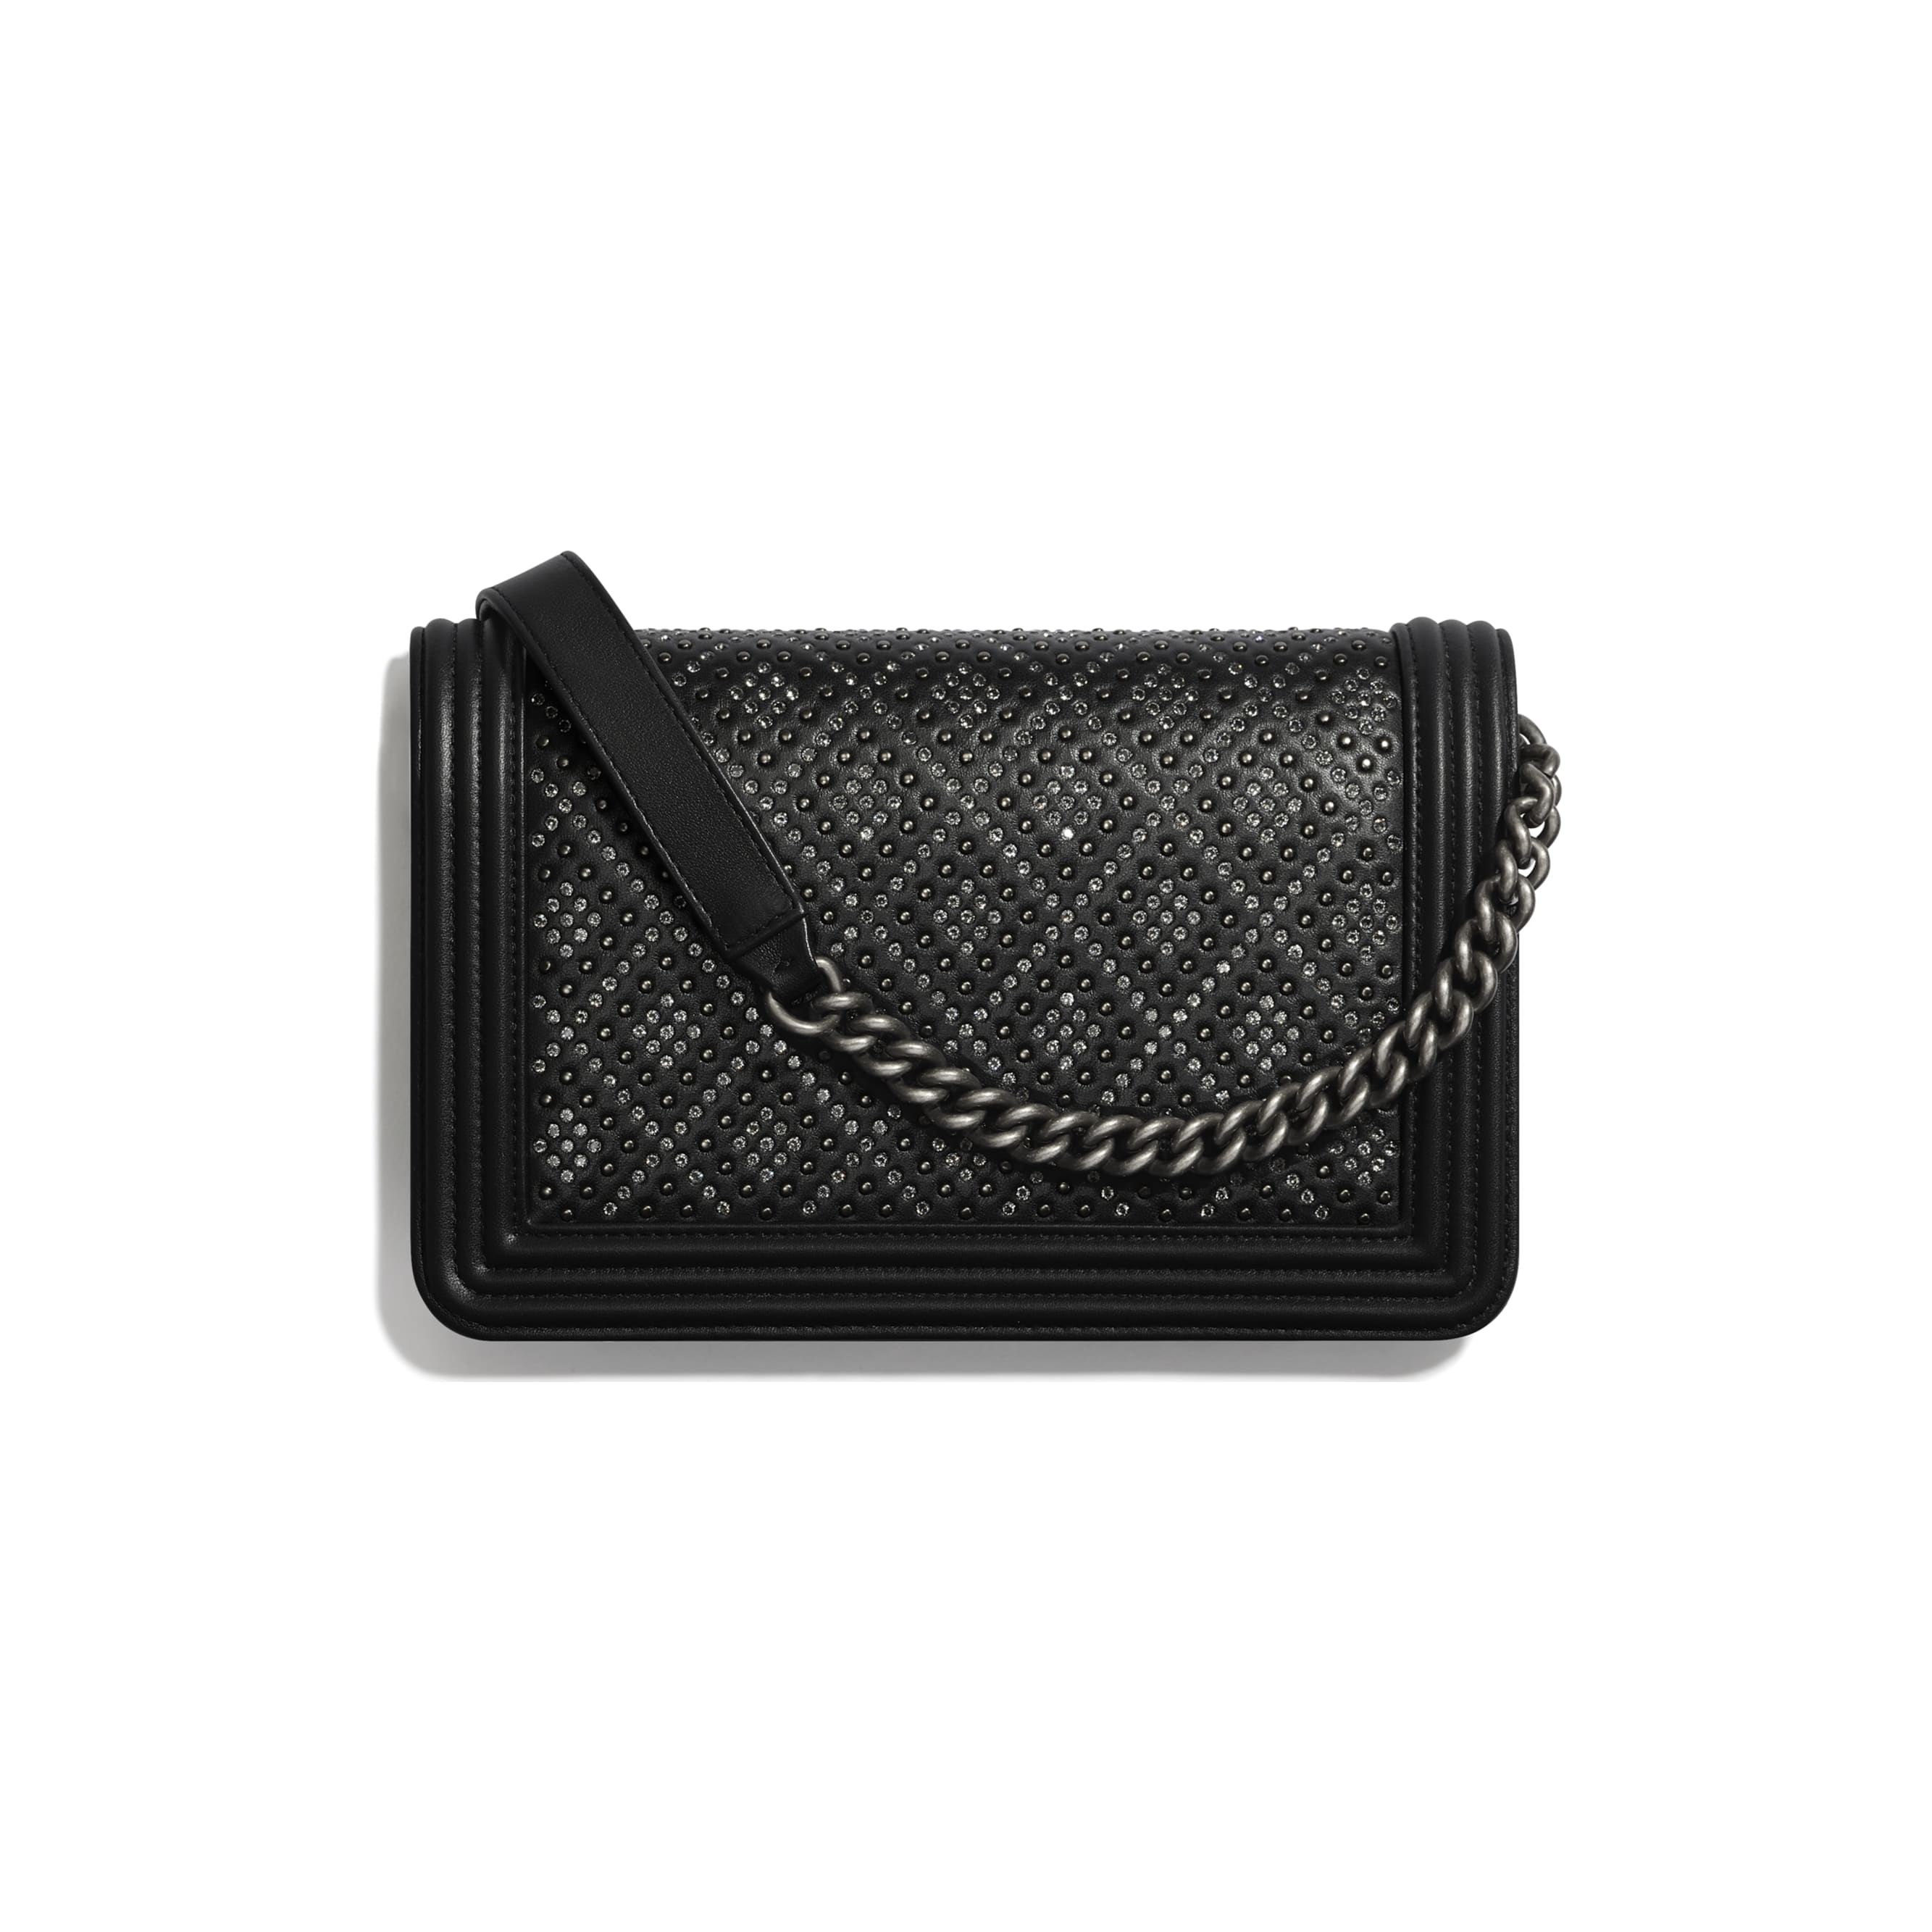 BOY CHANEL Wallet On Chain - Black - Calfskin, Studs, Diamanté & Ruthenium-Finish Metal - Alternative view - see standard sized version